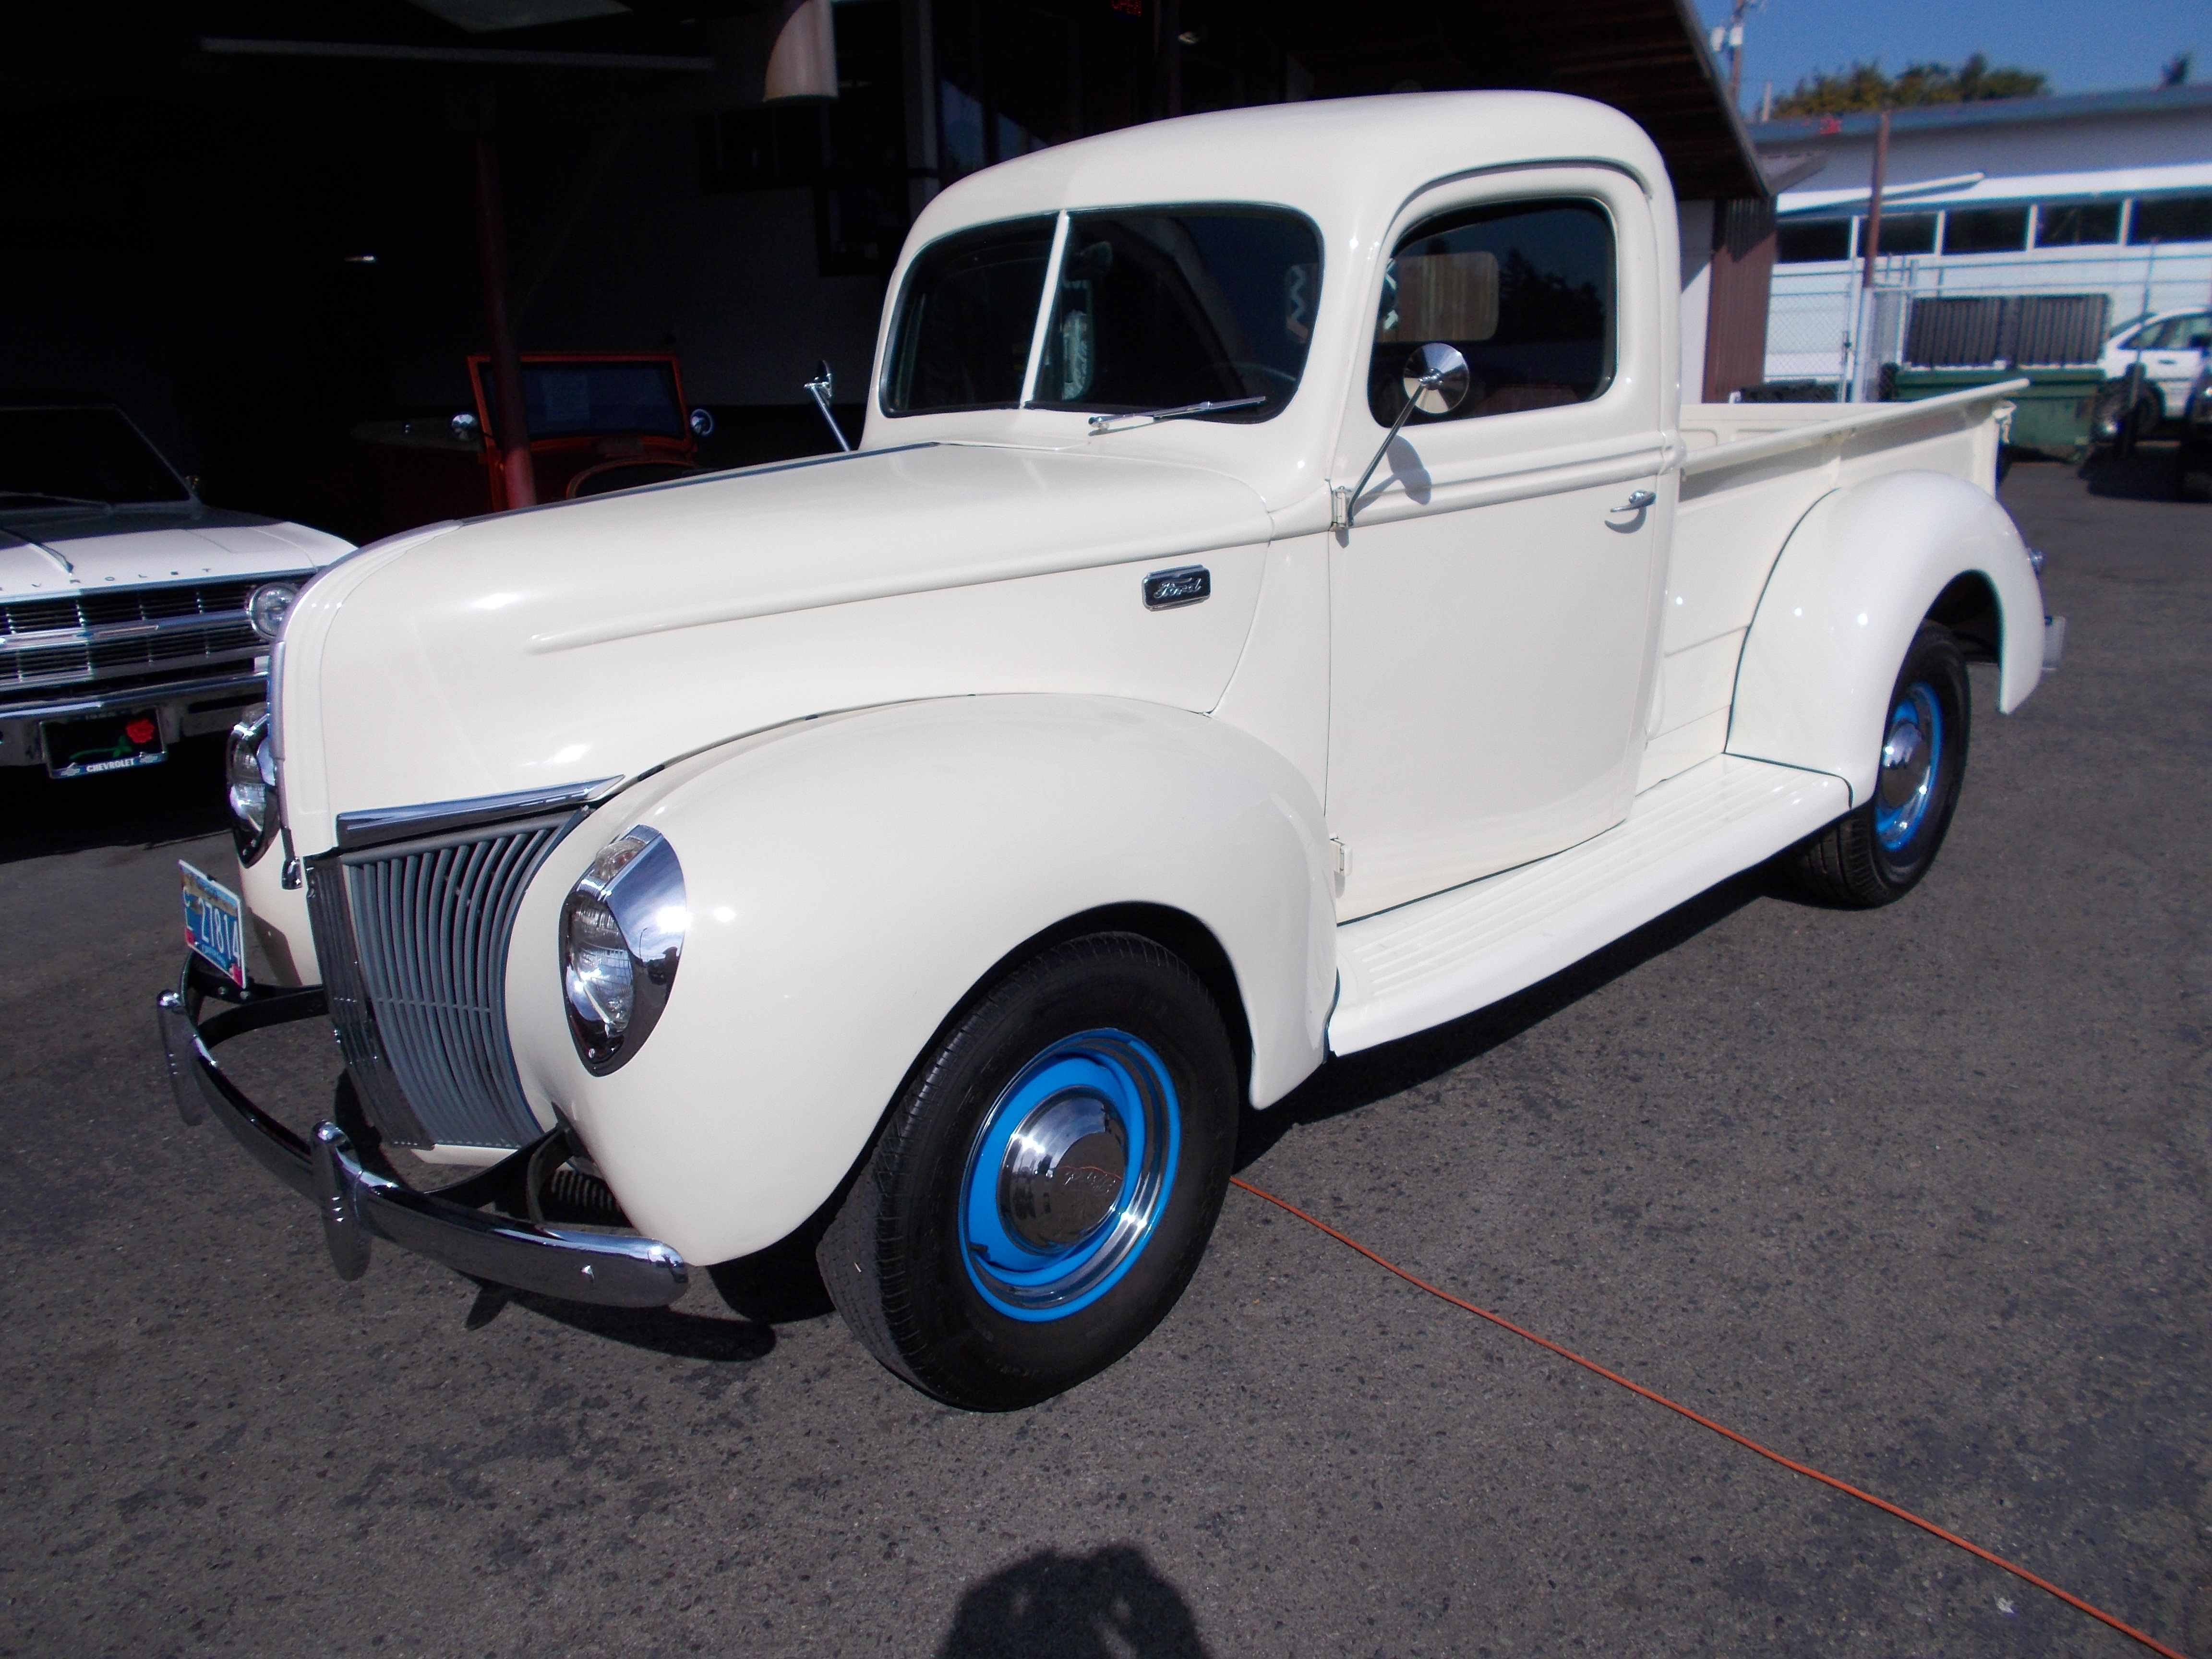 Hamilton Auto Sales 1941 Ford Truck Hot Rod Pu Restored Stock With Semi Hotrod Flat Head V 8 Original 3spd Transmission W 11 Inch Clutch And Running Gear Complete Motor Rebuild From